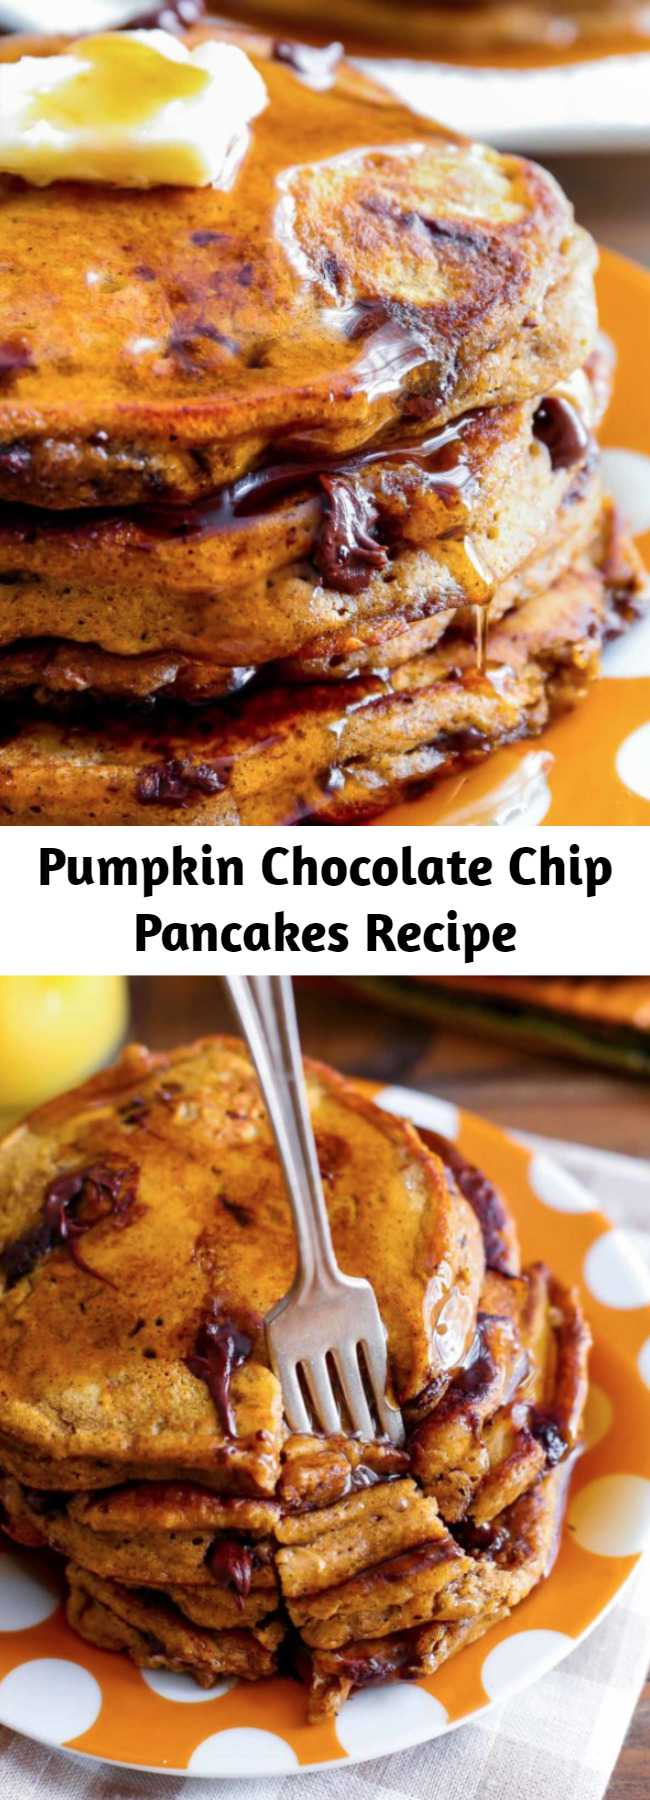 Pumpkin Chocolate Chip Pancakes Recipe - These pumpkin chocolate chip pancakes are the epitome of a cozy fall breakfast! Moist and fluffy, they're wonderful with a pat of butter and a cascade of maple syrup. You'll love starting fall mornings with a happy stack of these thick, and flavorful pumpkin pancakes.